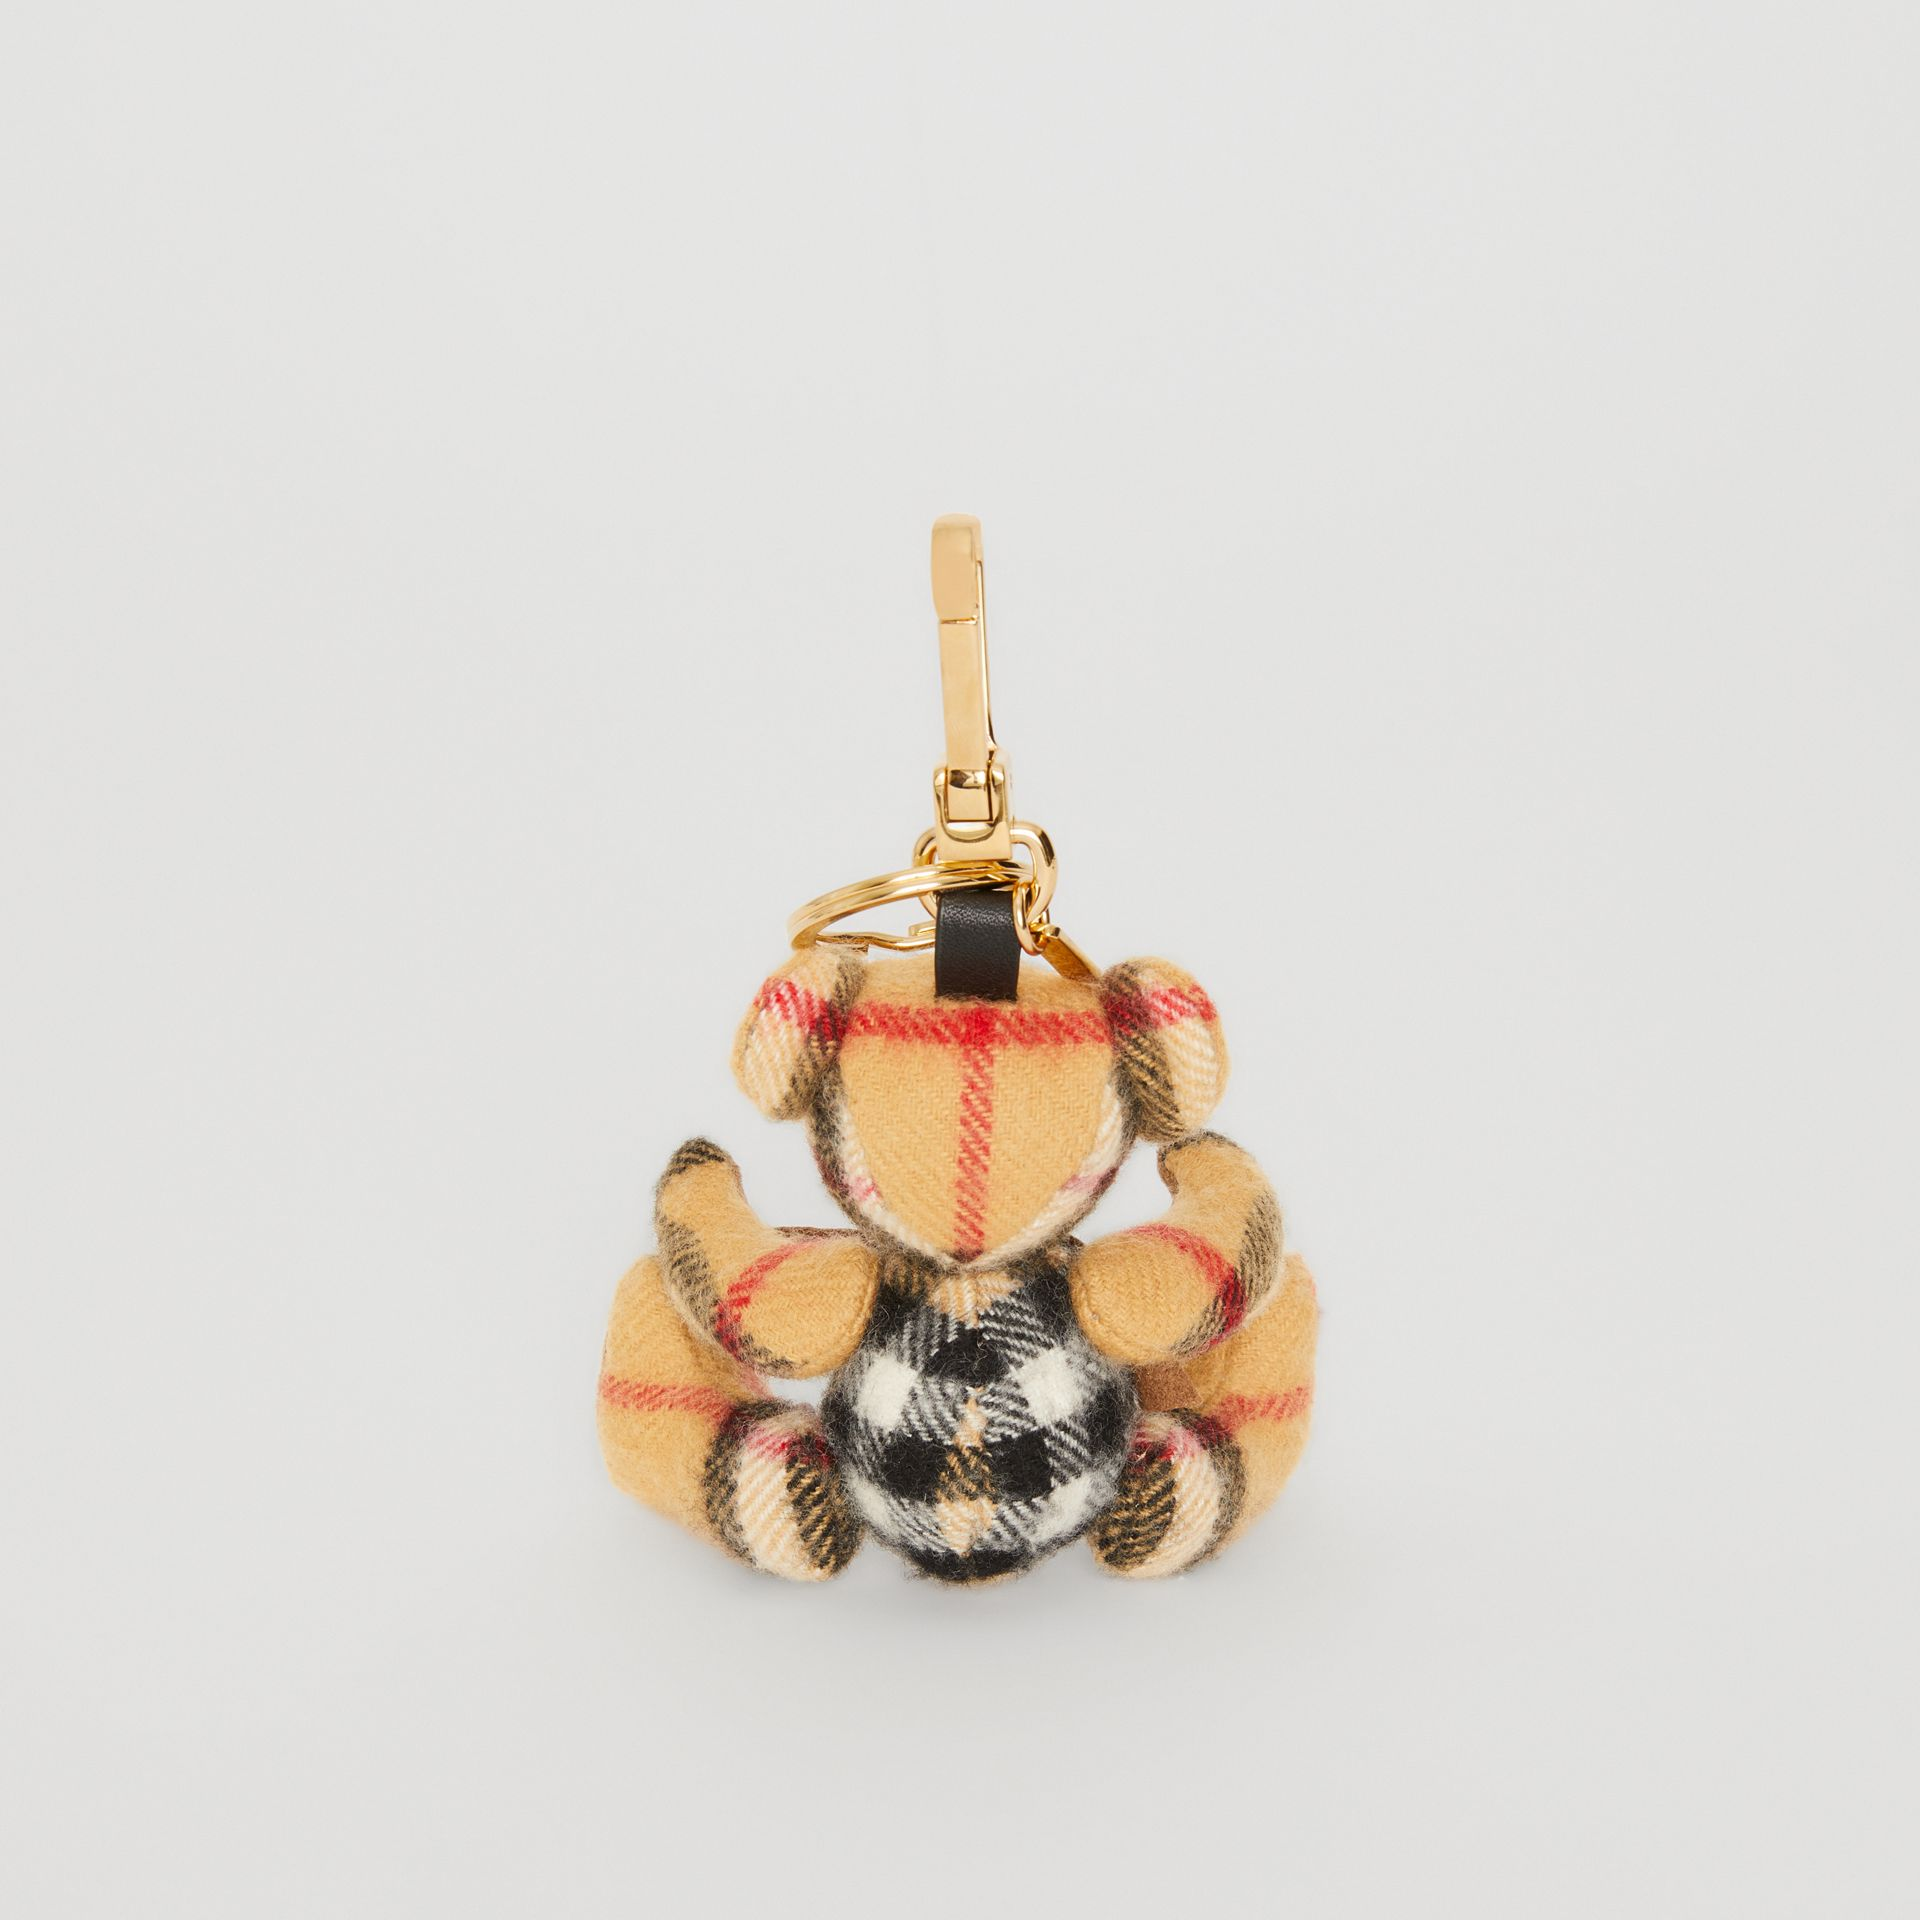 Bijou porte-clés Thomas Bear en cachemire à motif Vintage check (Jaune Antique) | Burberry - photo de la galerie 4